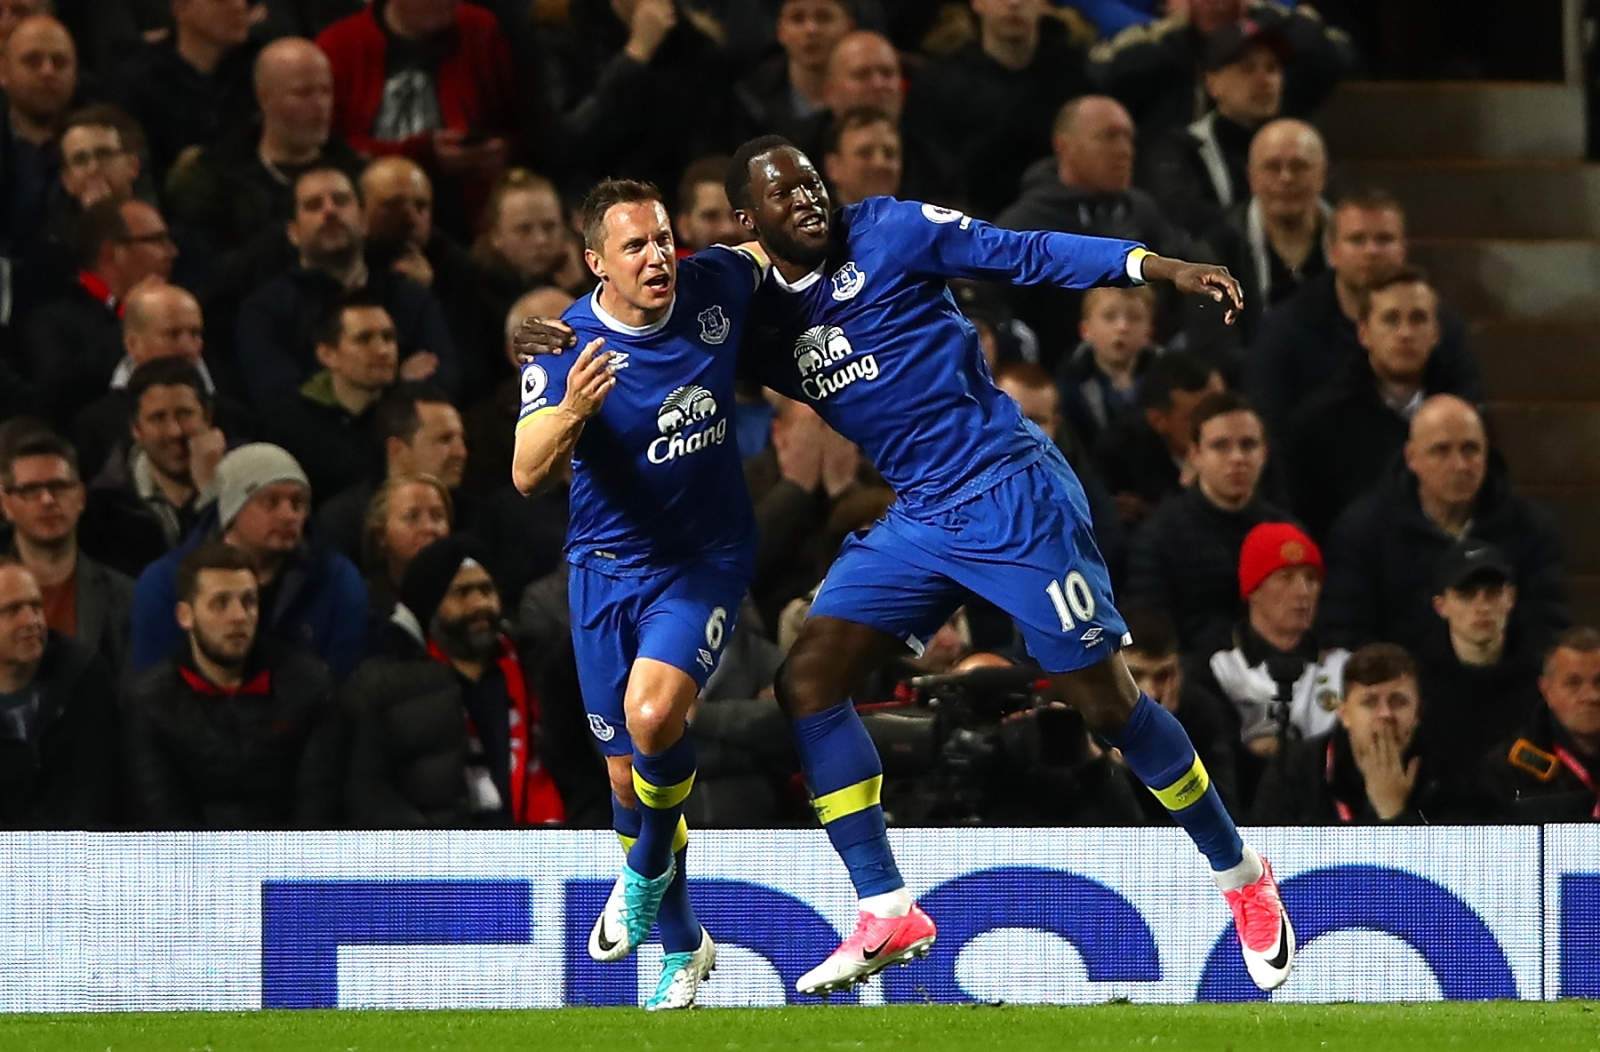 Phil Jagielka and Romelu Lukaku